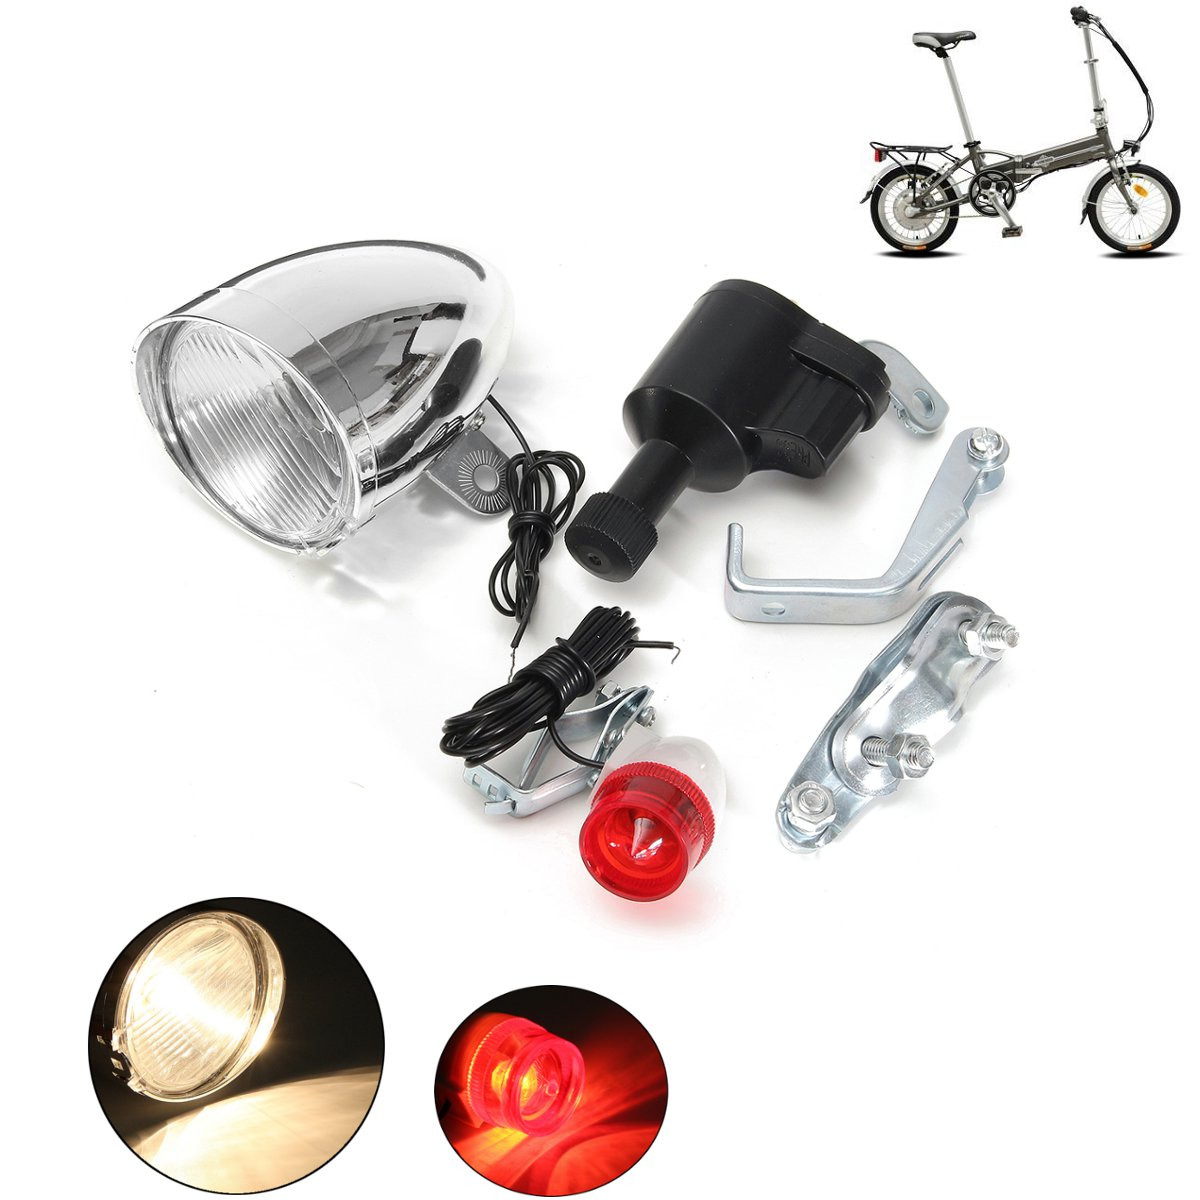 1Set 6V 3W Bicycle For Dynamo Lights Set Safety No Batteries Needed Headlight Rearlight LED Bicycle Lights Suitable For All Bike